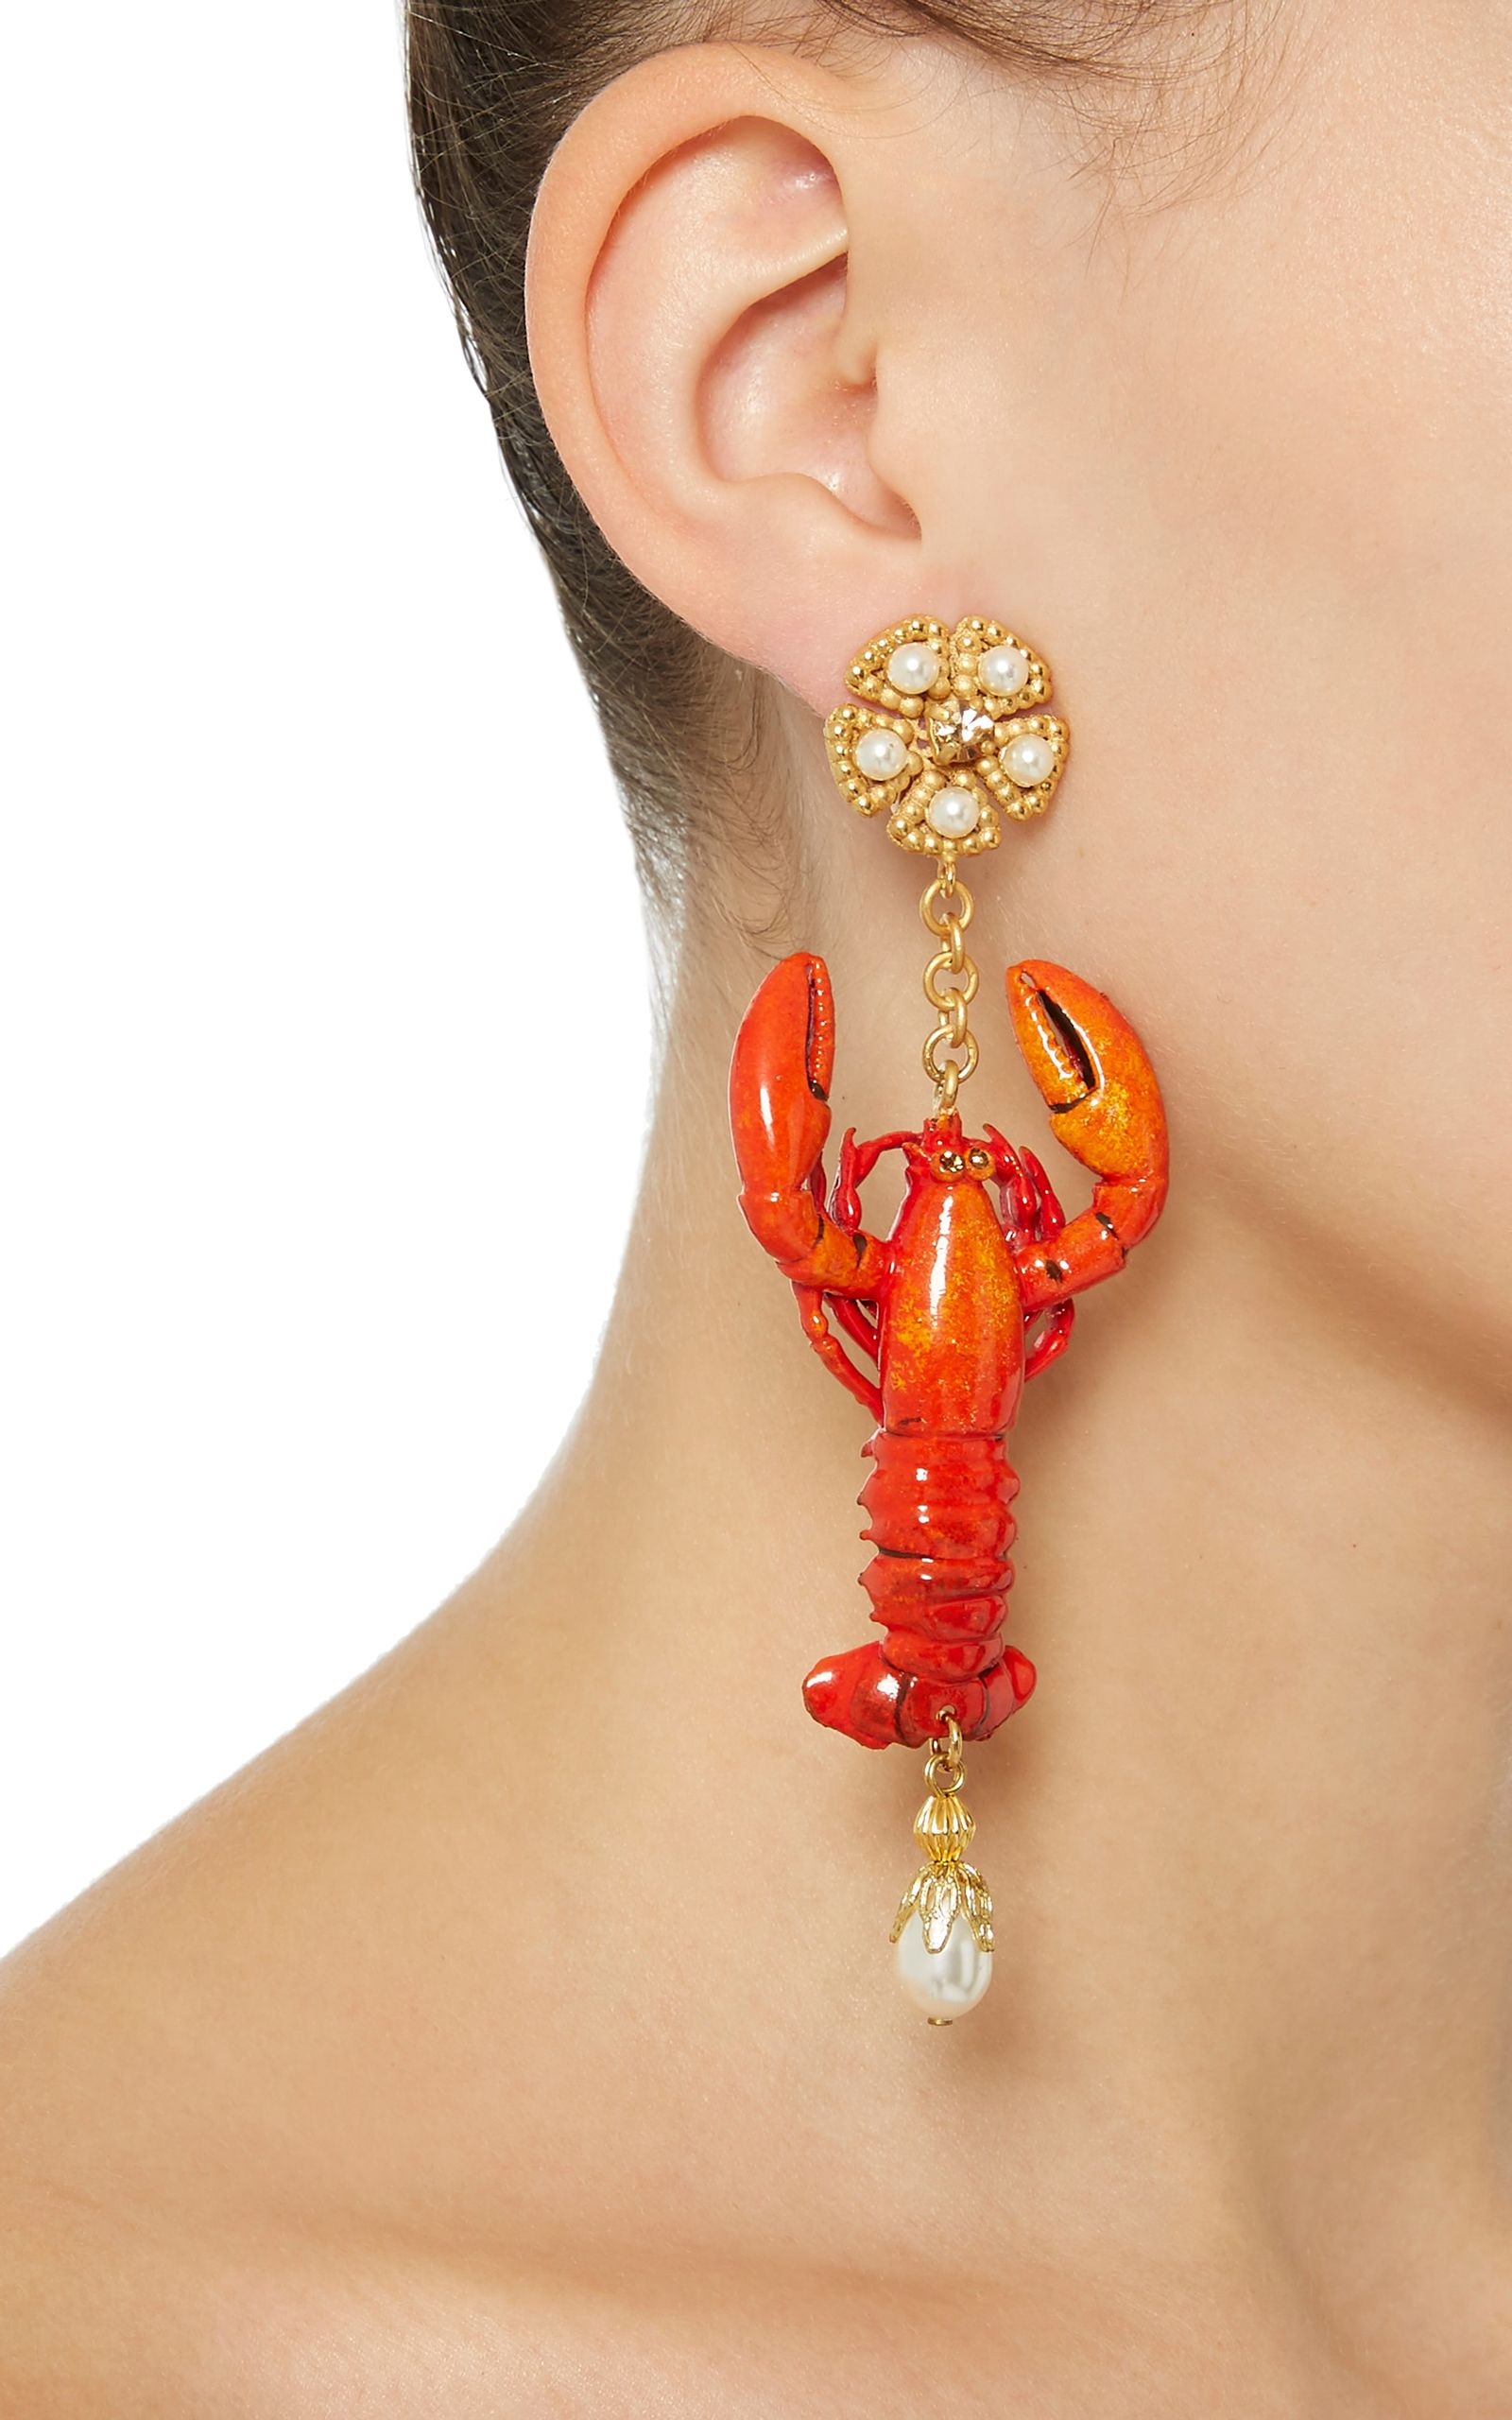 lobster earrings unusual accessories pinterest schmuck farbtypen und dolce gabbana. Black Bedroom Furniture Sets. Home Design Ideas